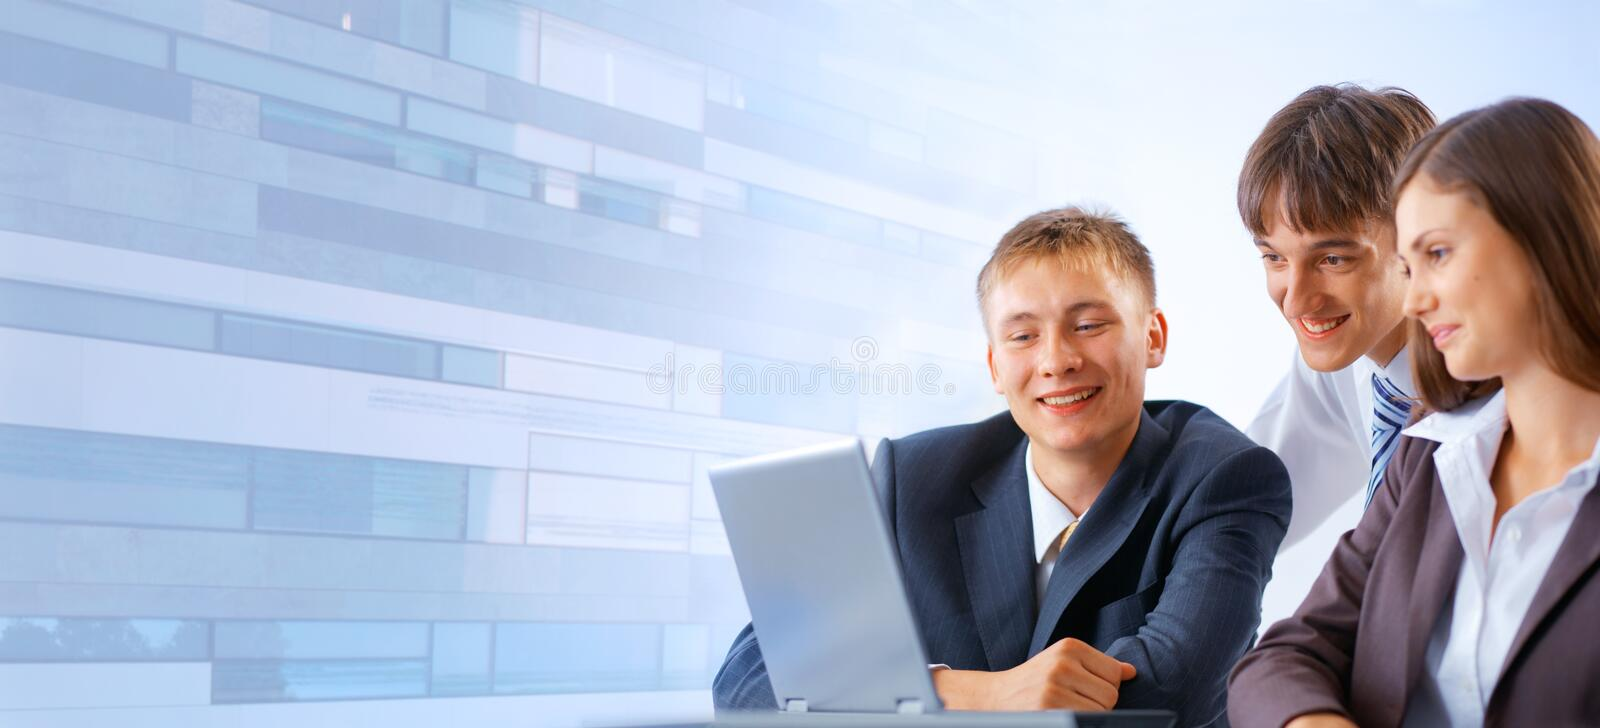 Download Working business team stock photo. Image of laptop, modern - 11550316